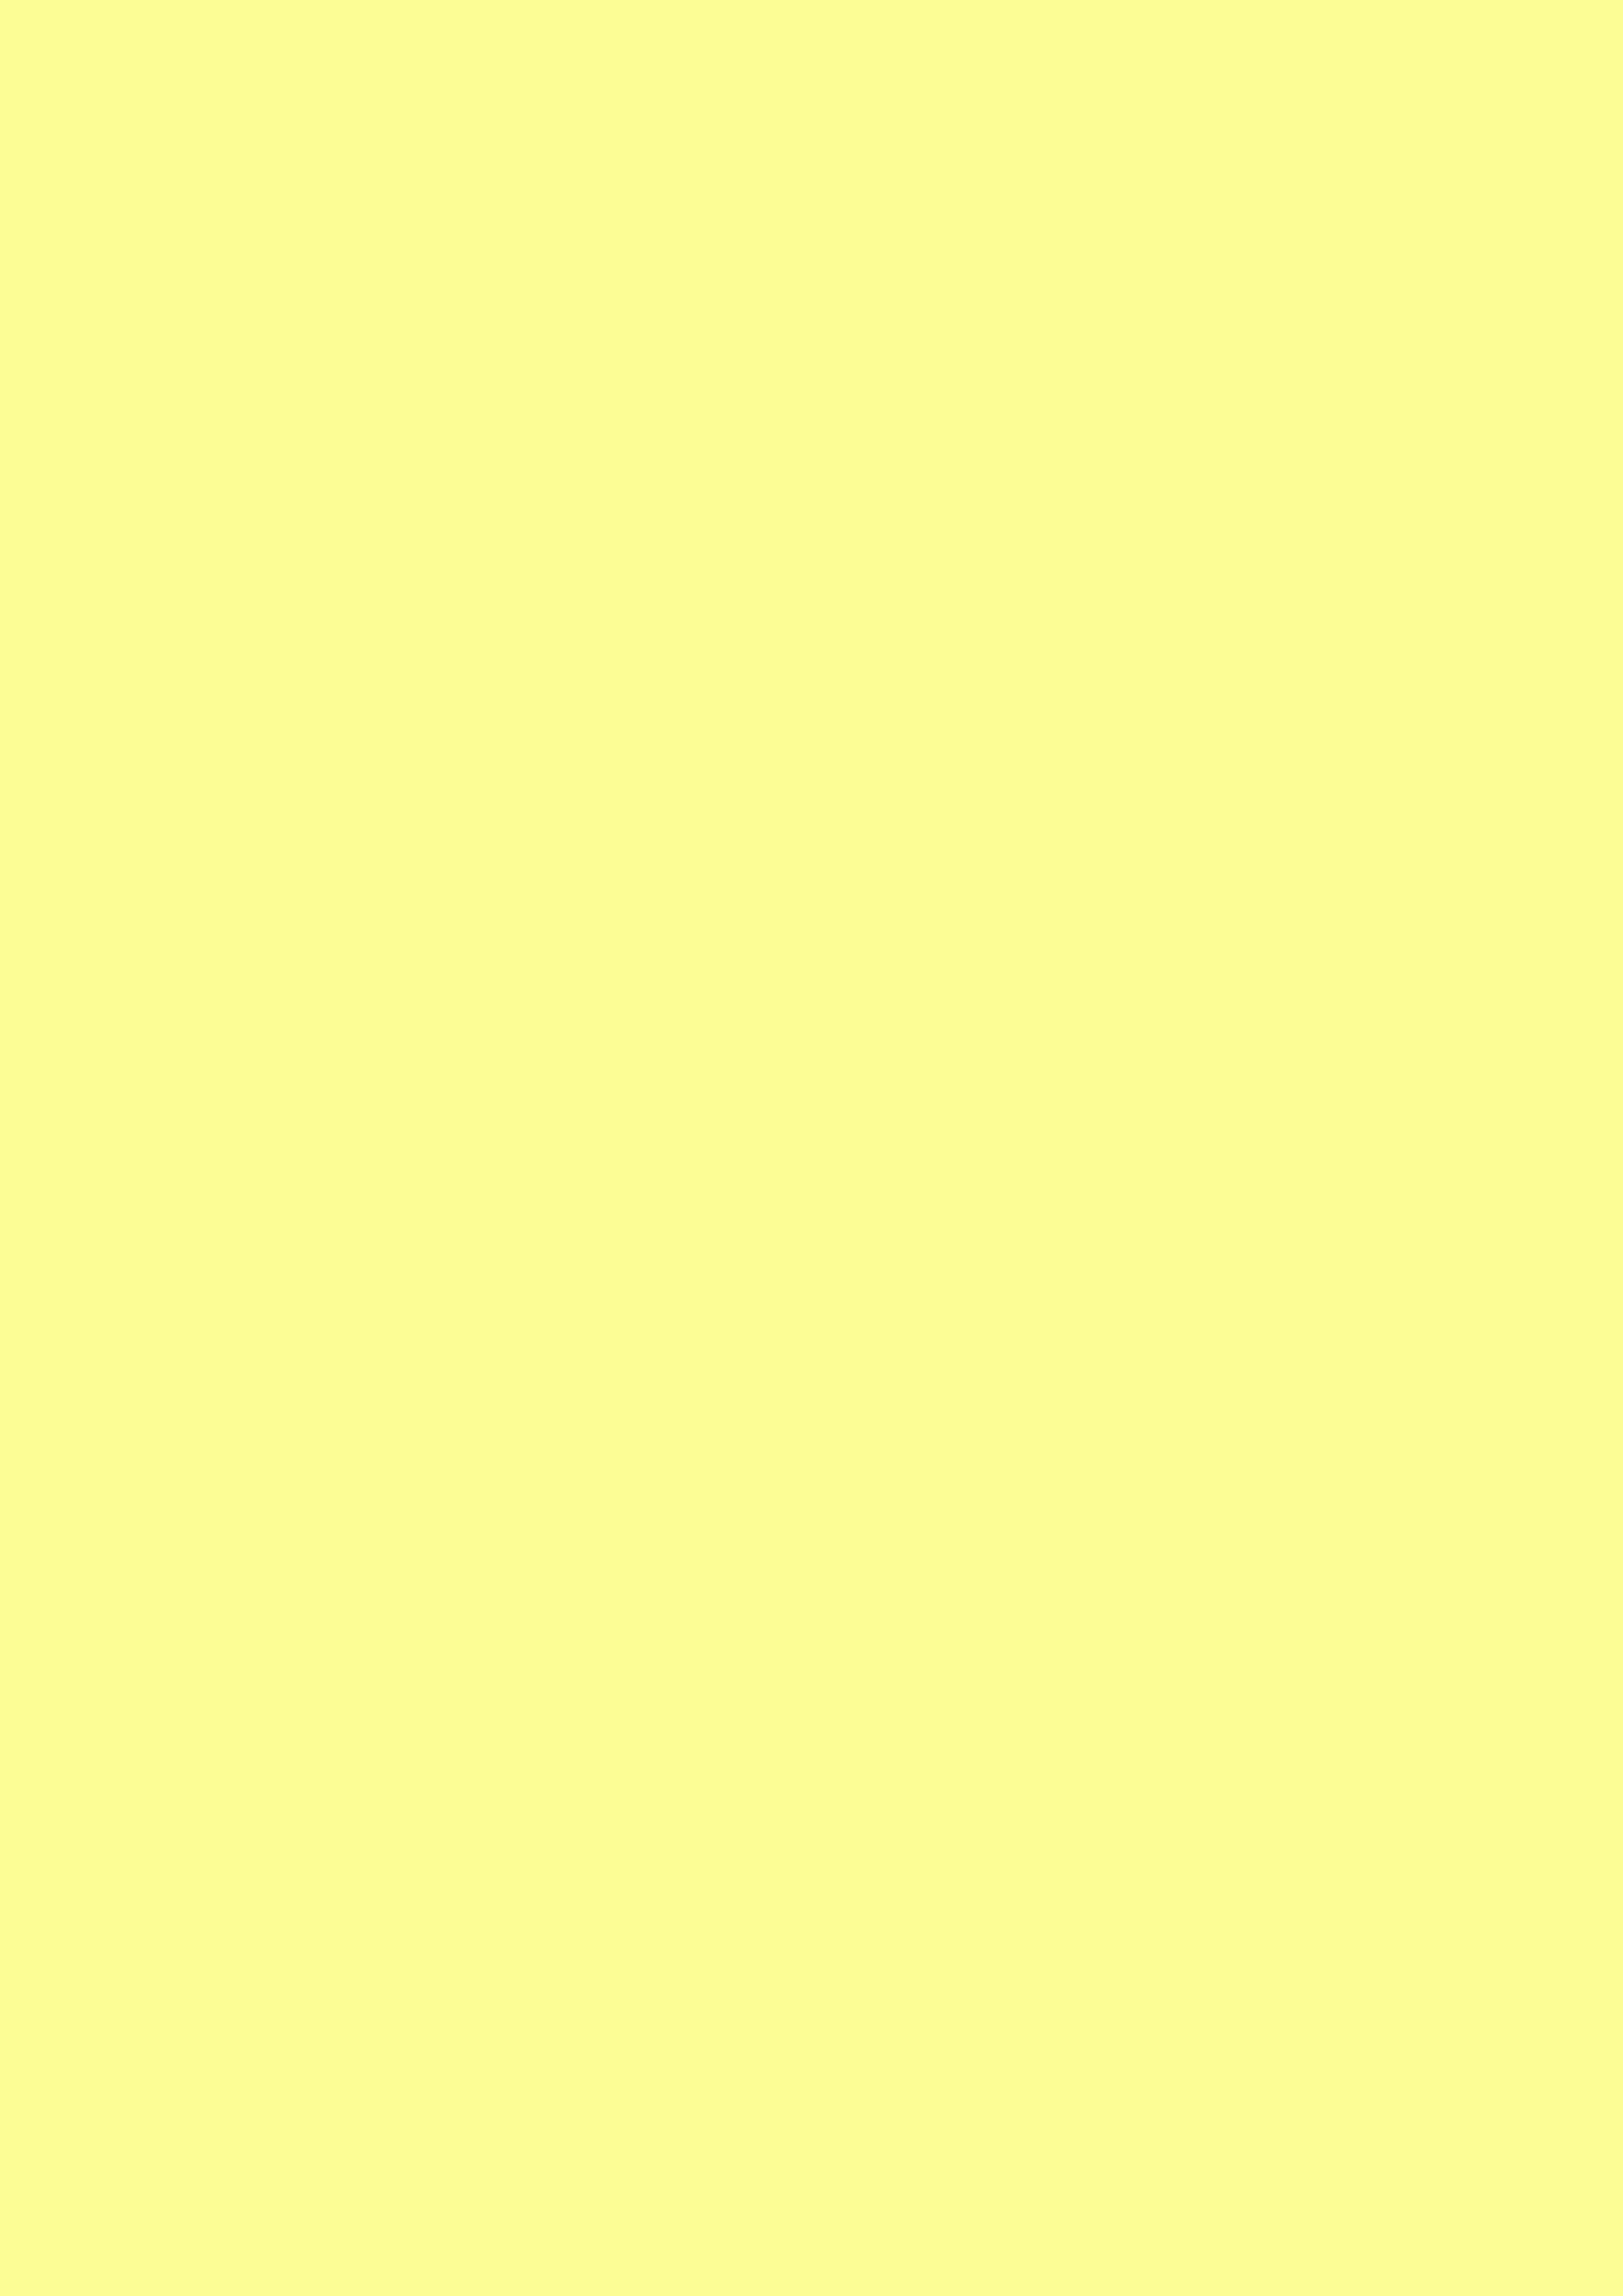 2480x3508 Pastel Yellow Solid Color Background